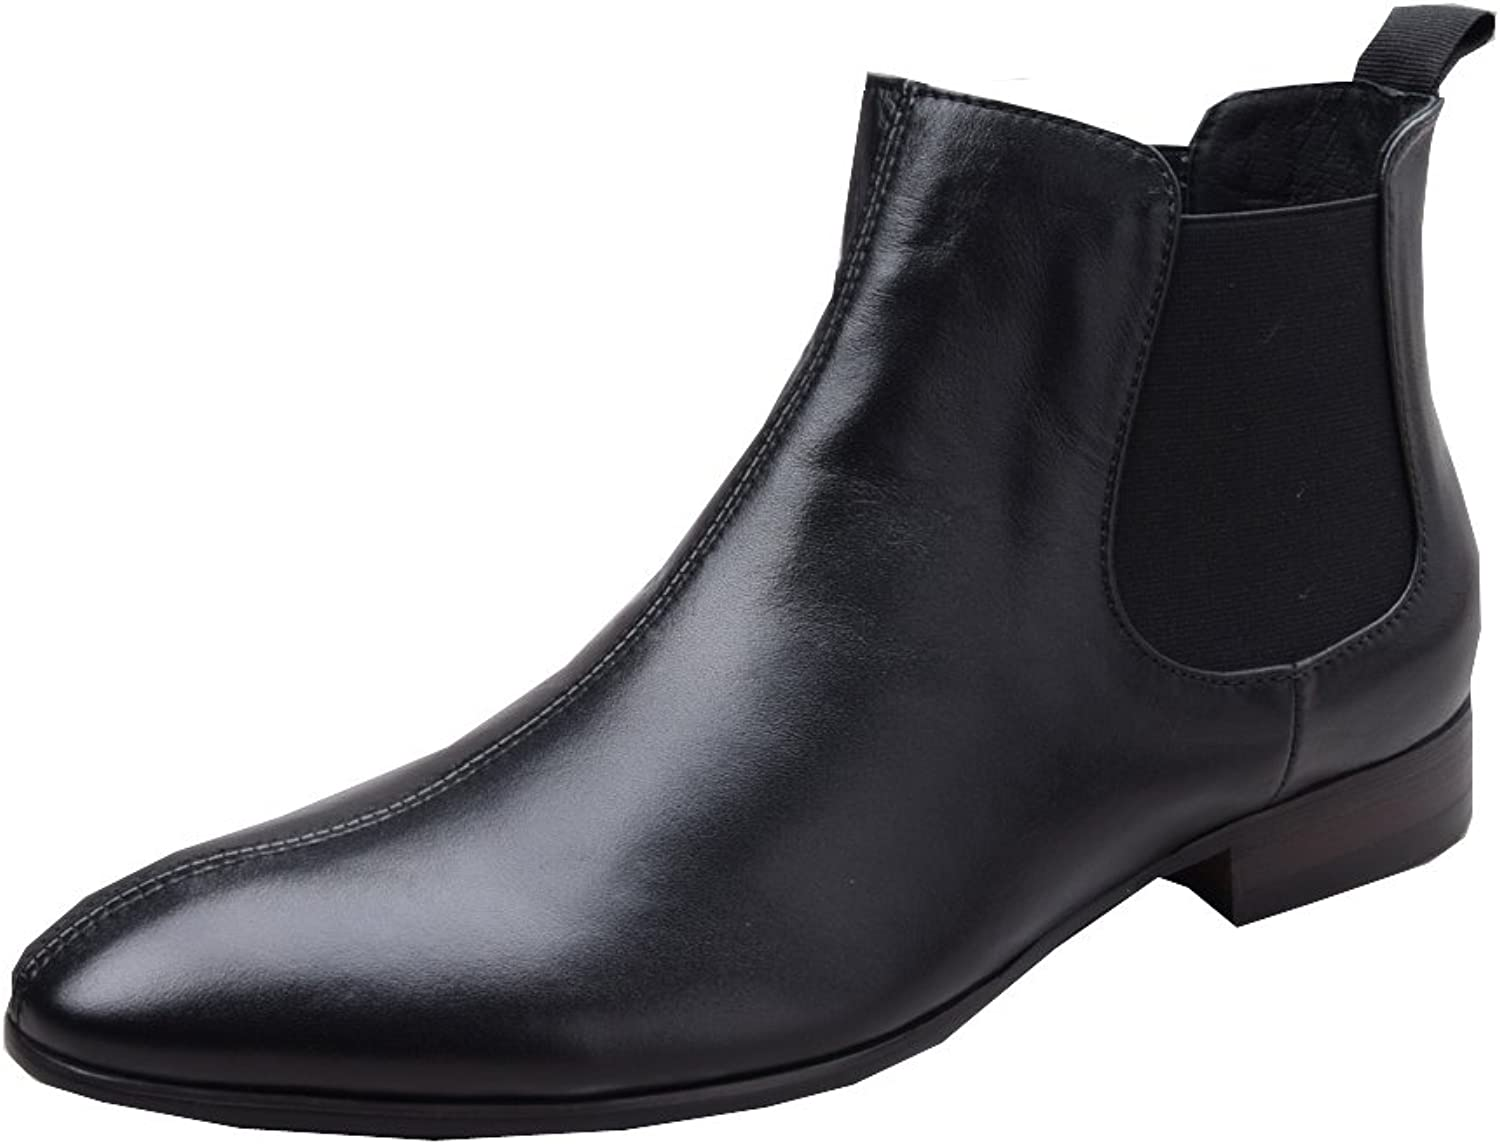 UNbox Mens Black Leather Chelsea with Sole Wide Boots